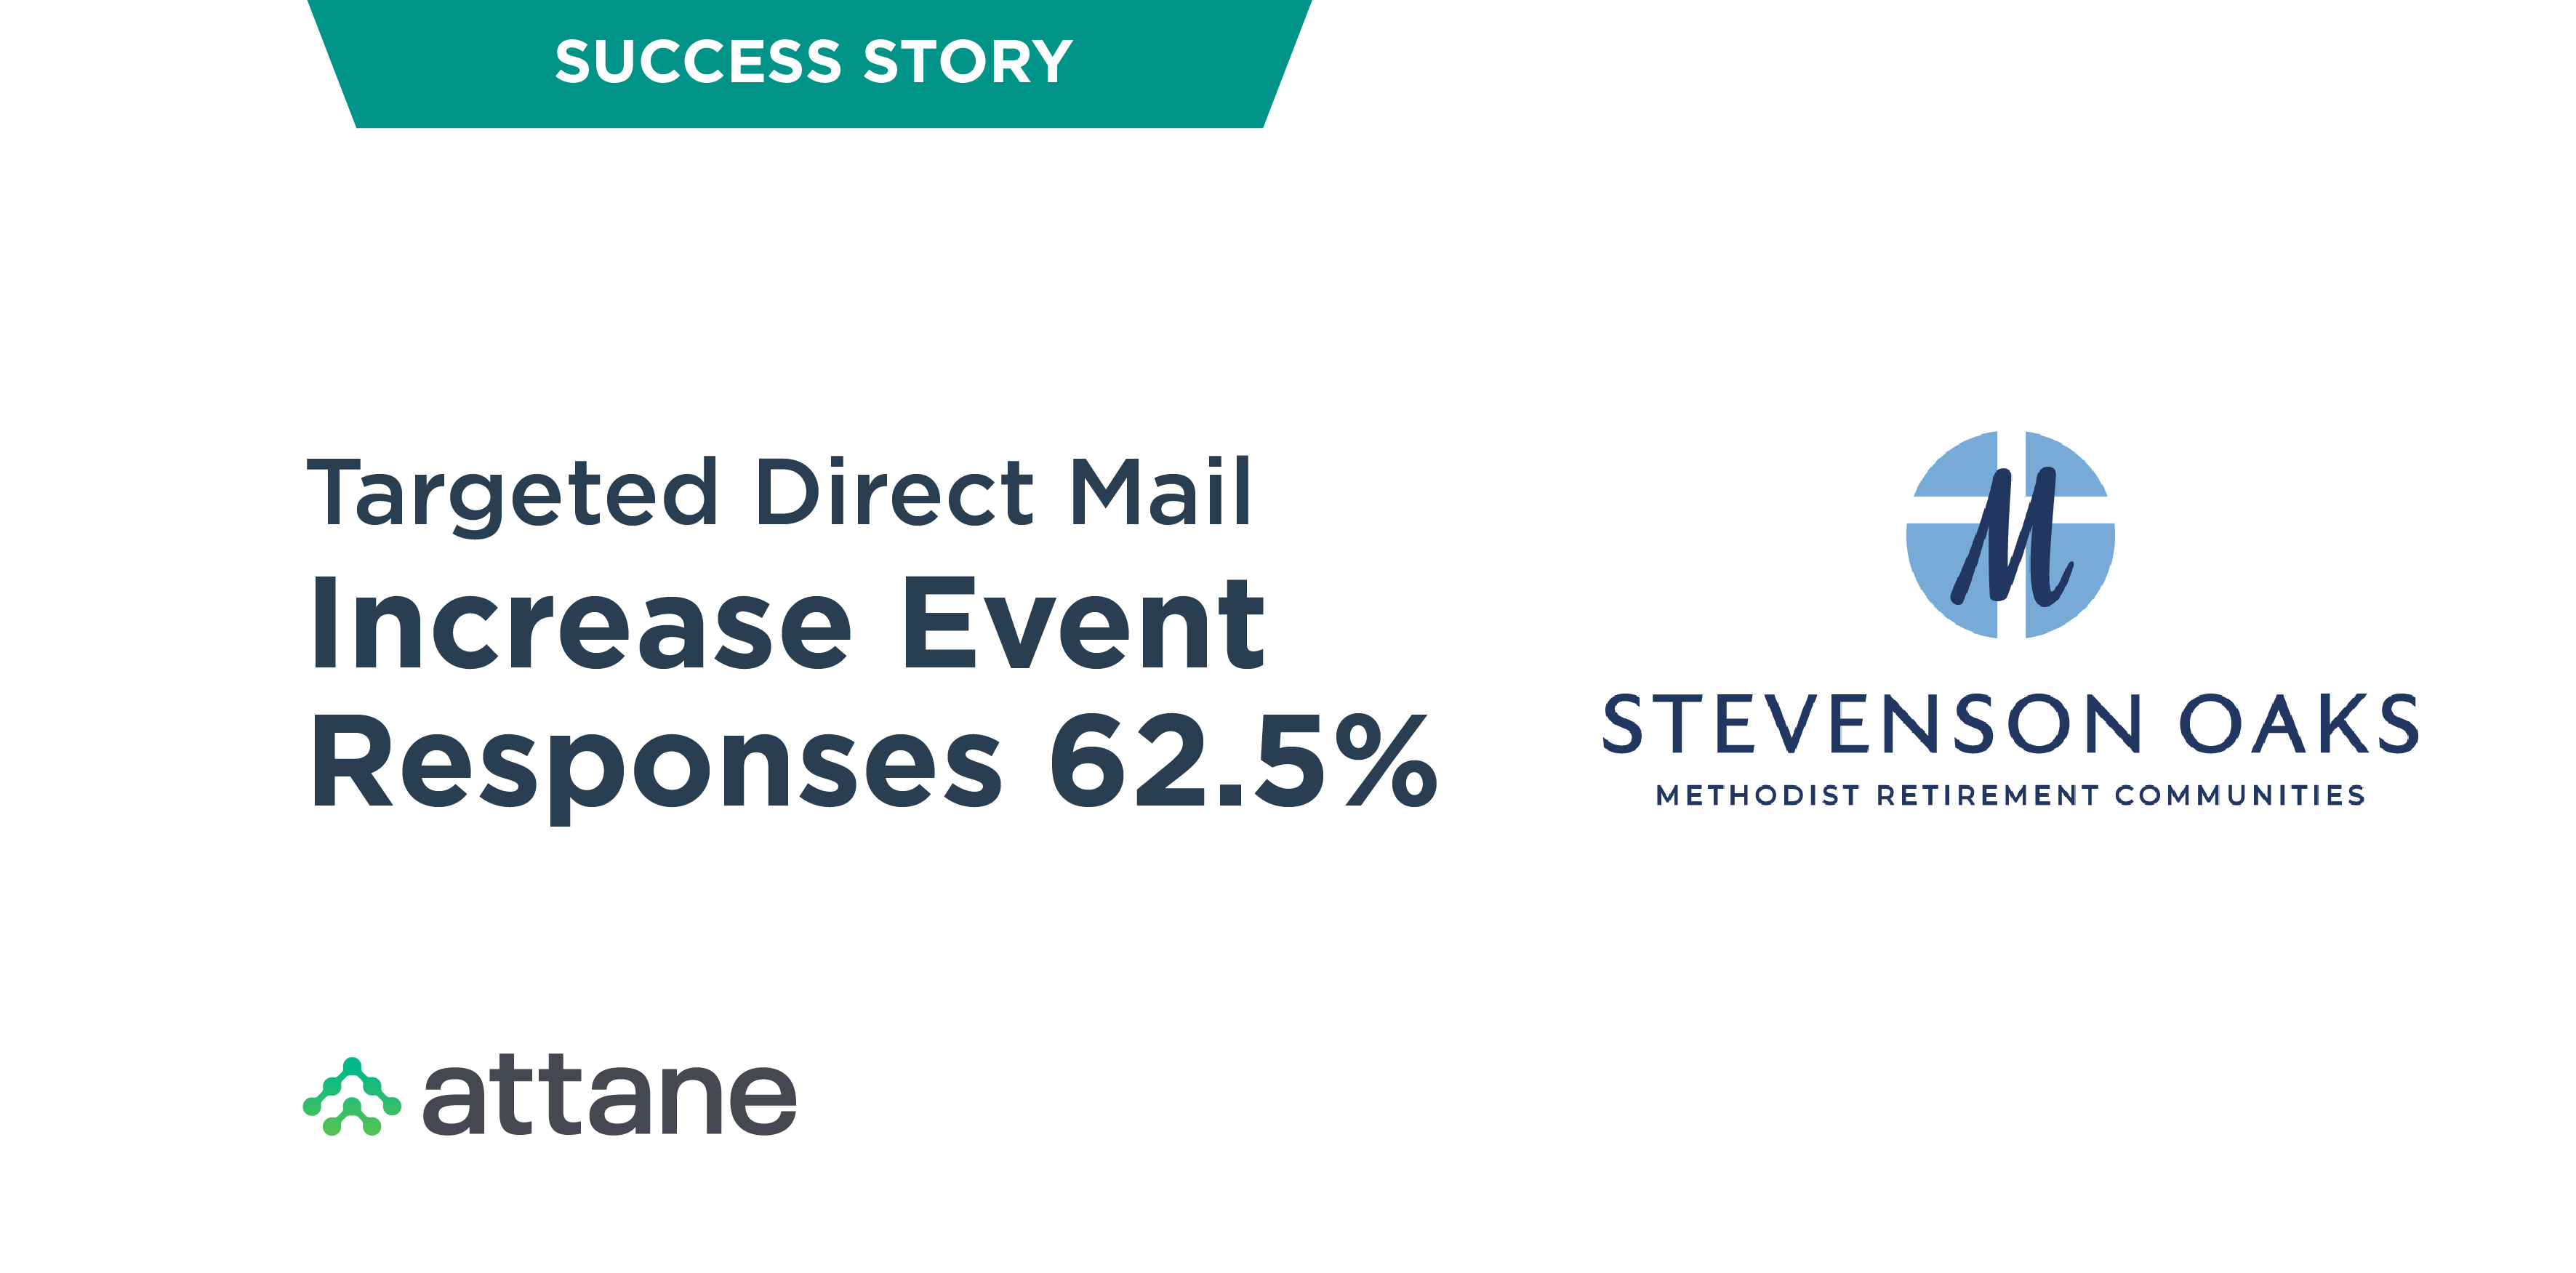 Targeted Direct Mail Increases Event Responses 62.5%